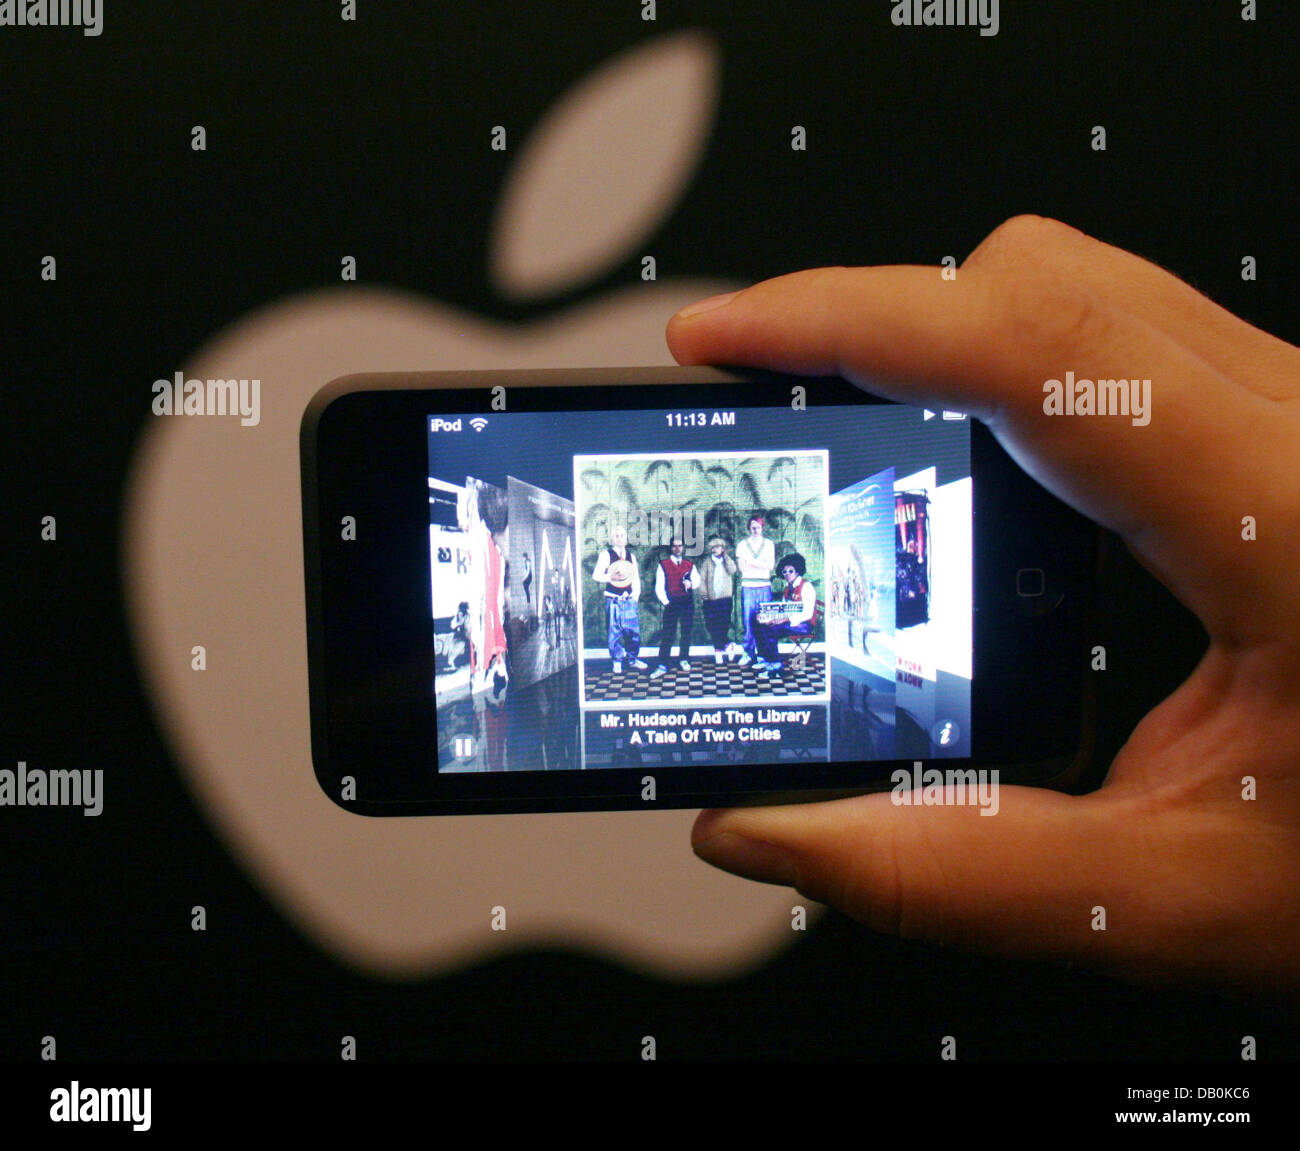 The picture shows the new iPod Touch, which was presented to journalists in Hamburg, Germany, 06 September 2007. - Stock Image